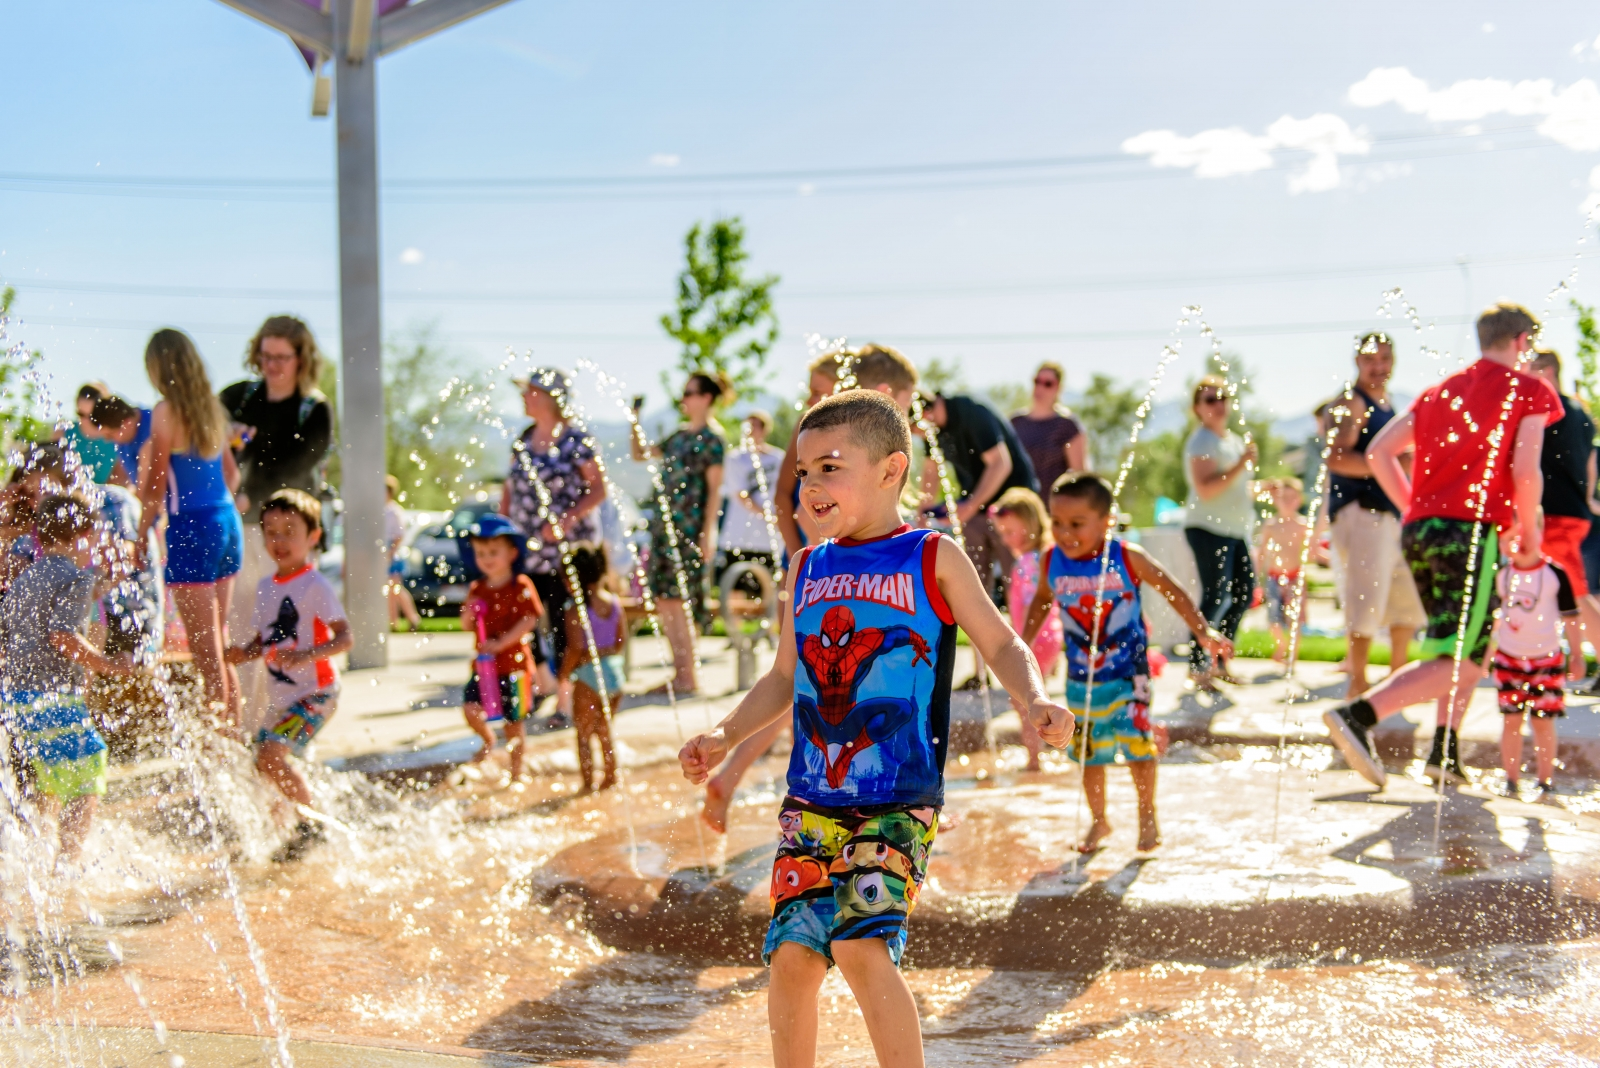 Smith Fields Park Splash Pad